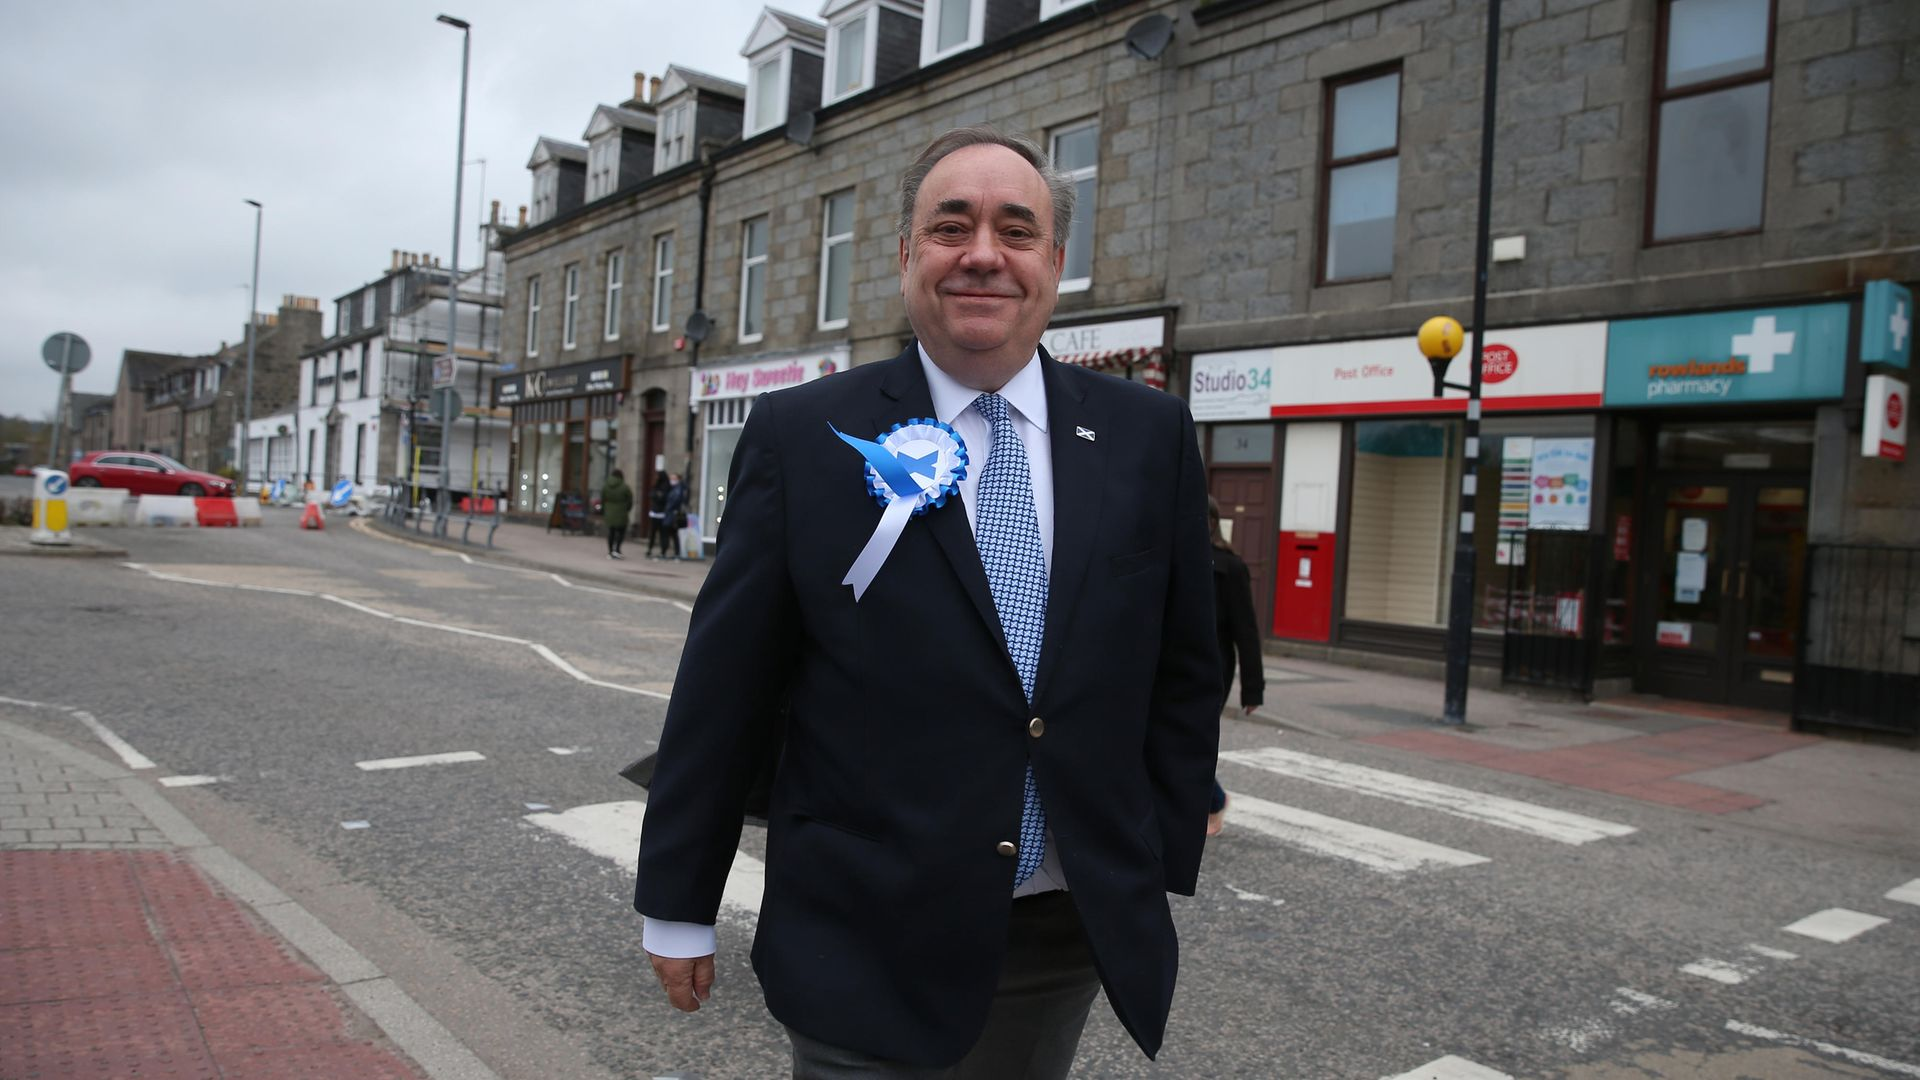 ALBA party leader Alex Salmond in Ellon as votes continue to be counted for the Scottish Parliamentary Elections - Credit: PA